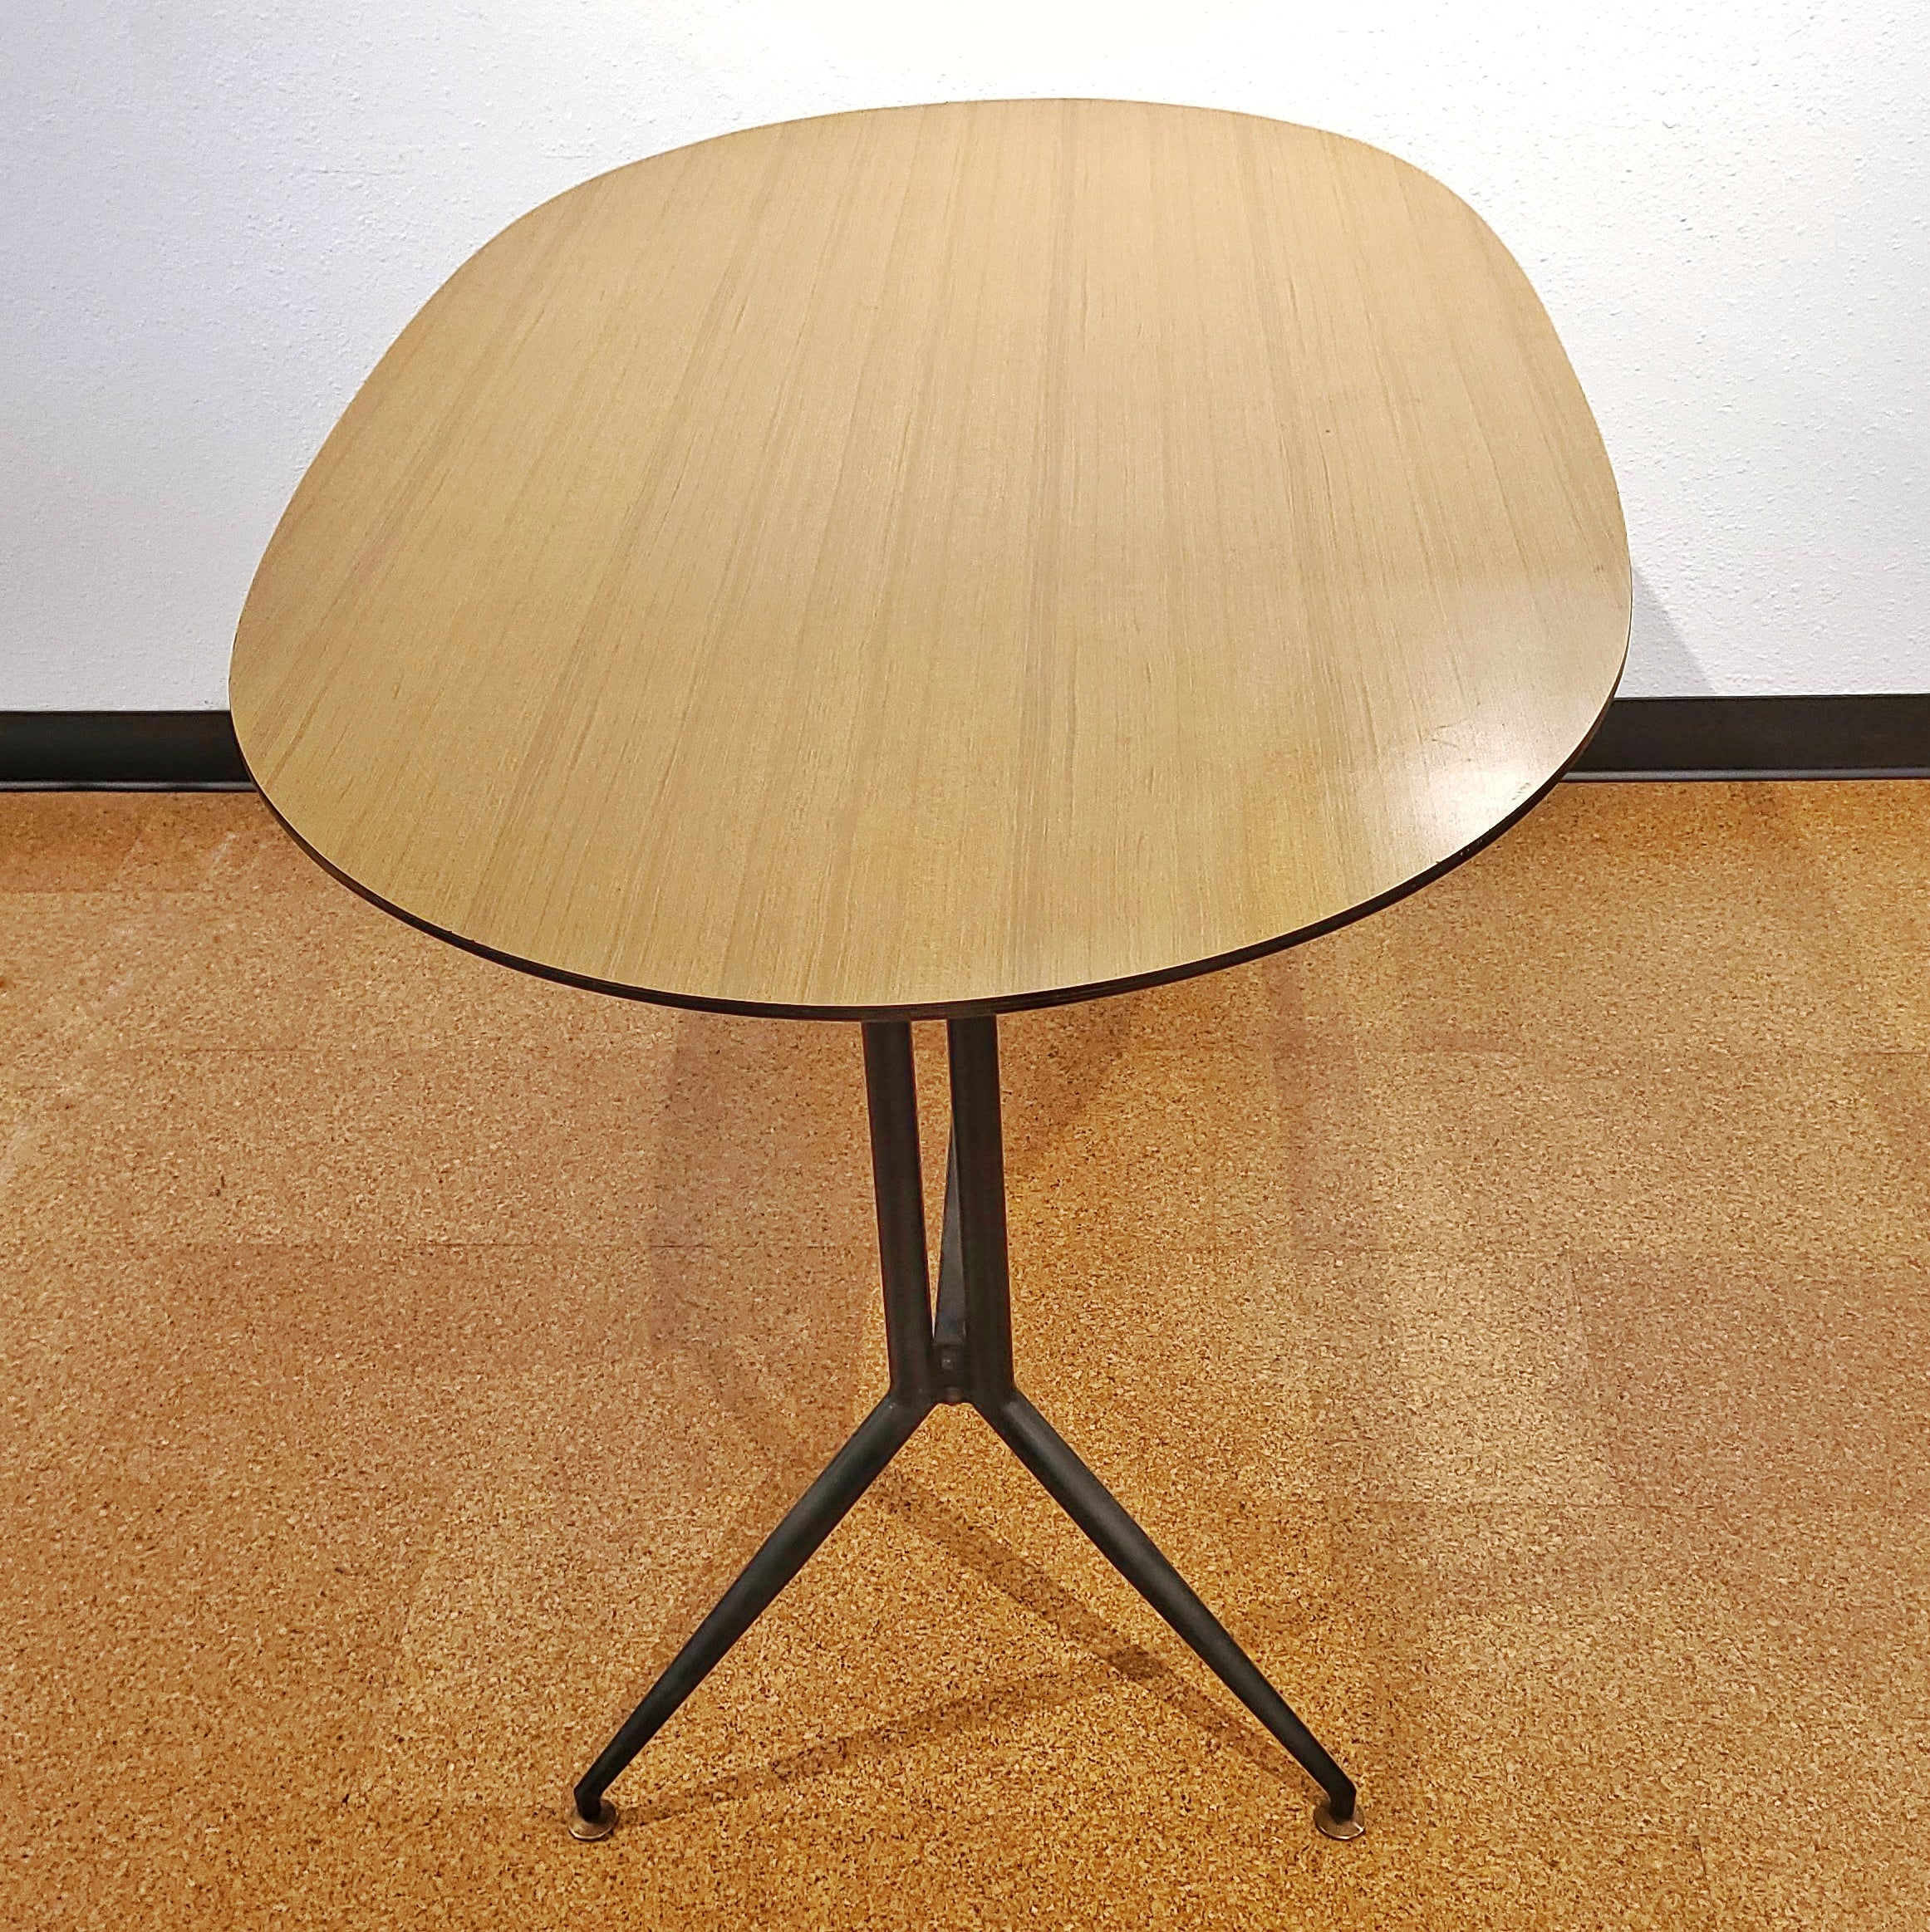 ITALIAN TRESTLE DINING TABLE OF TUBULAR STEEL AND LAMINATE ON PLYWOOD